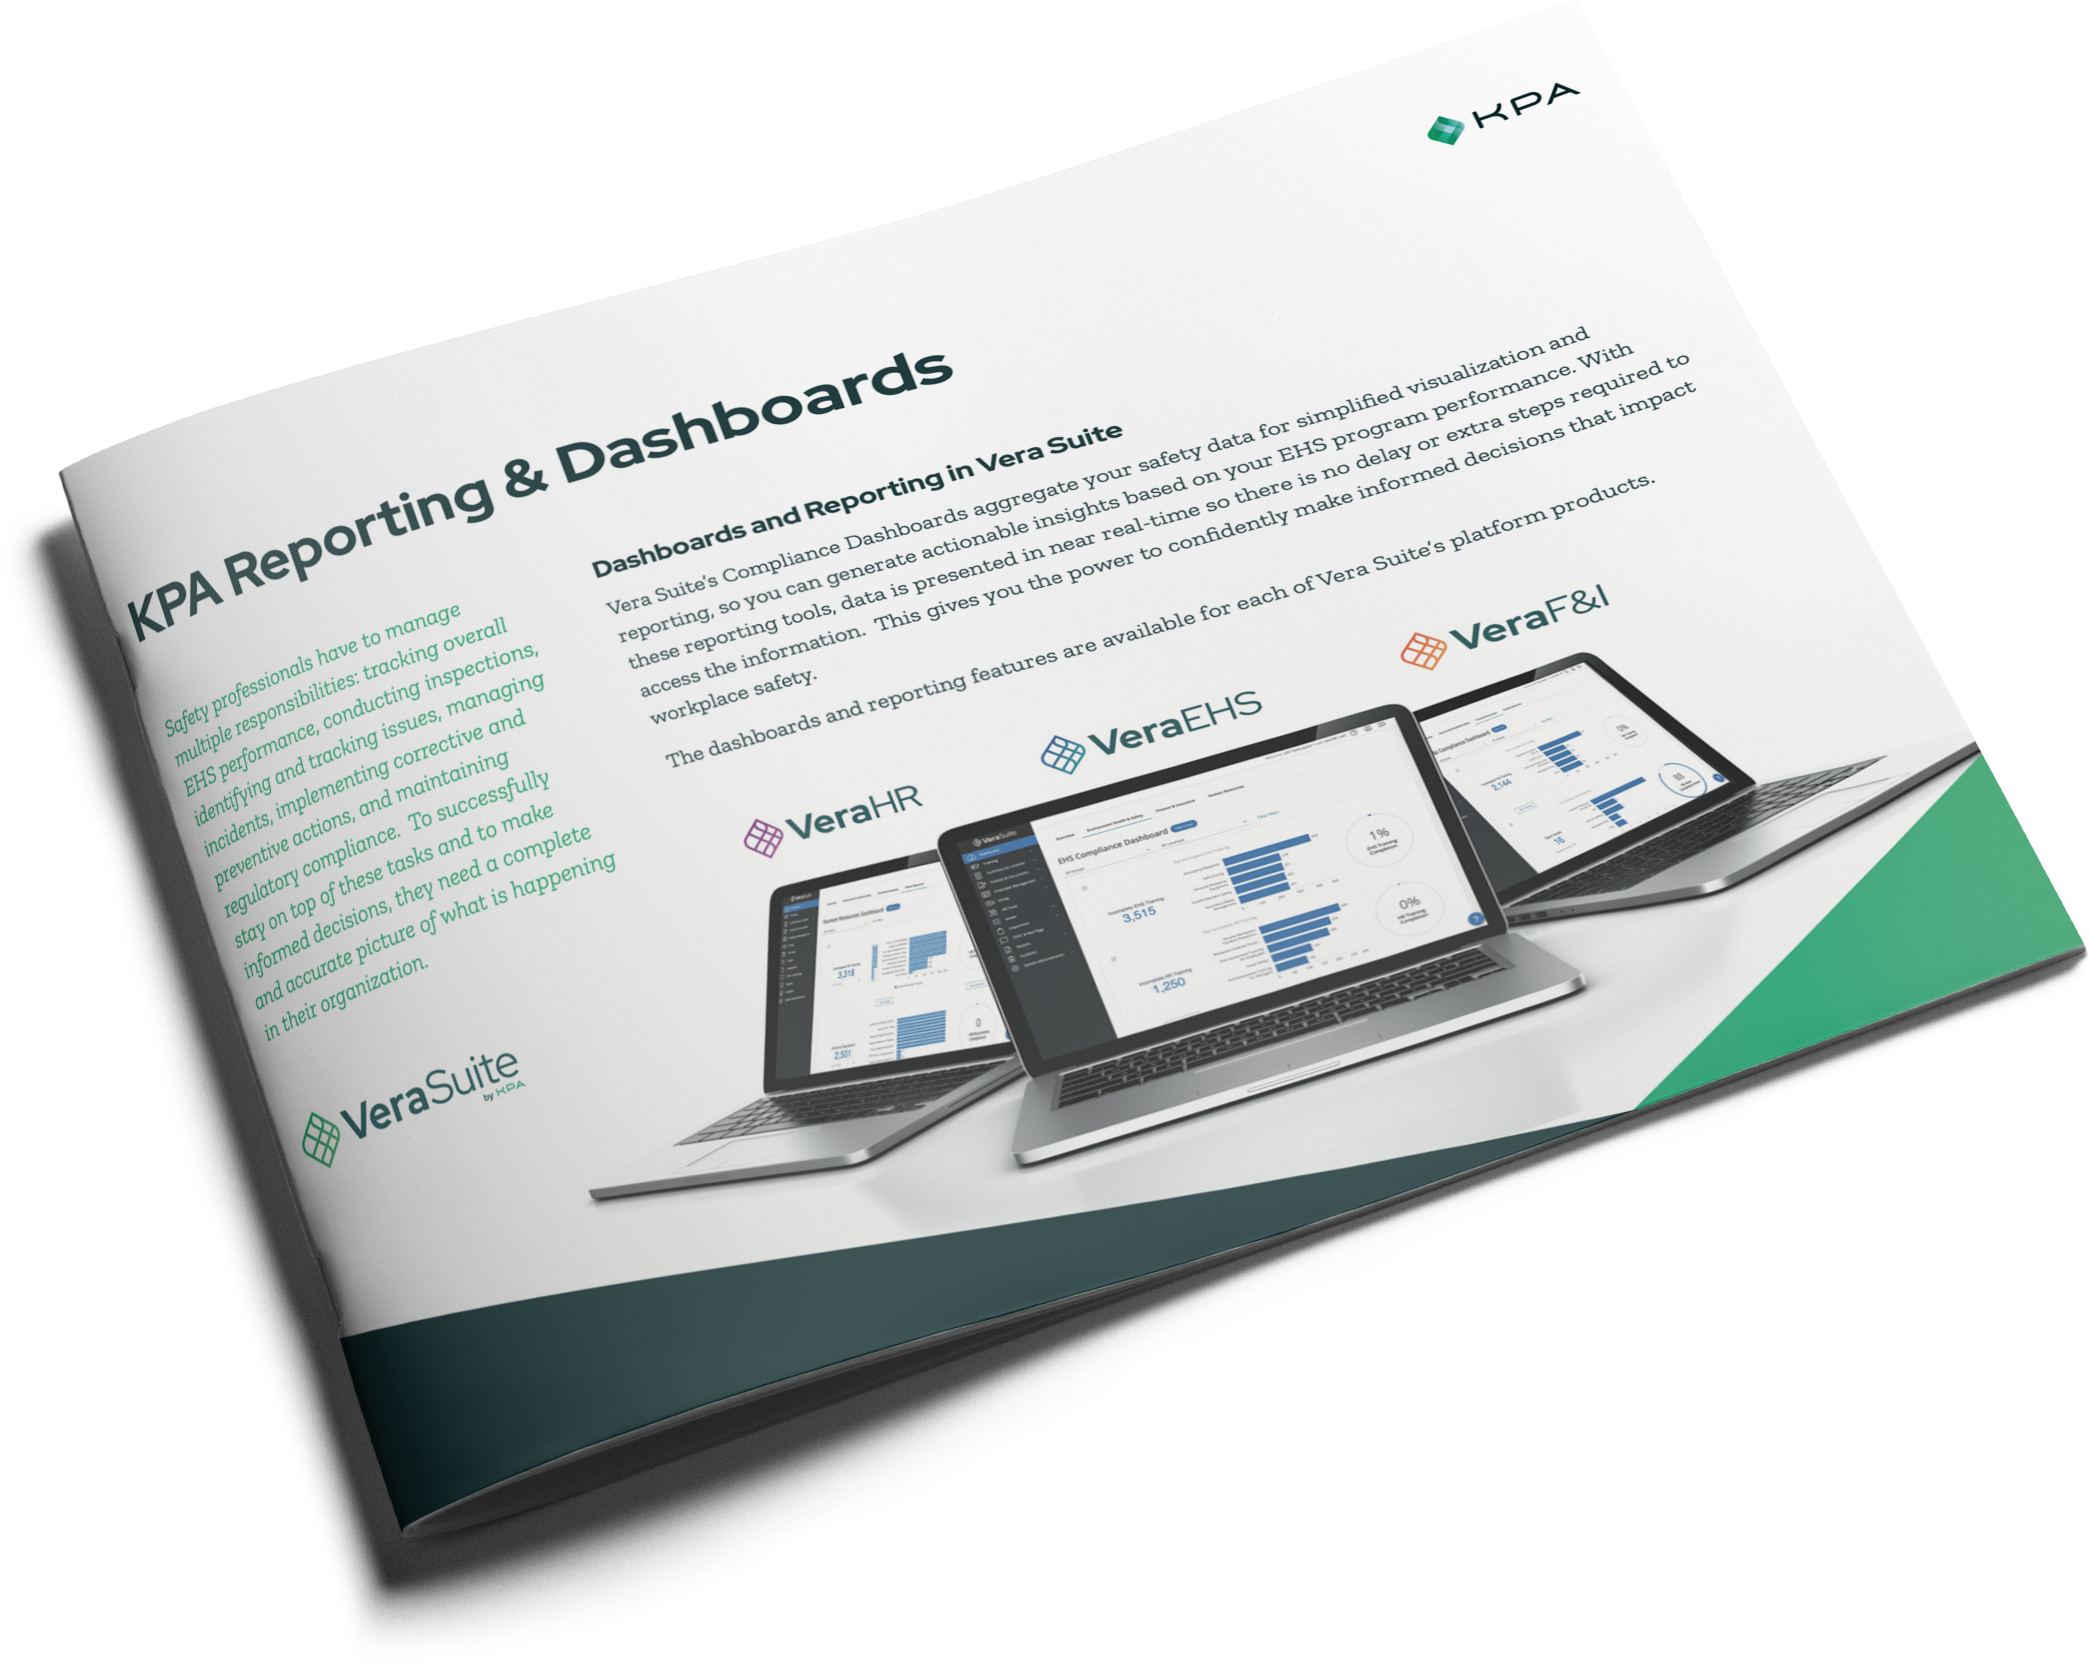 KPA - Reporting & Dashboards Solution Brief